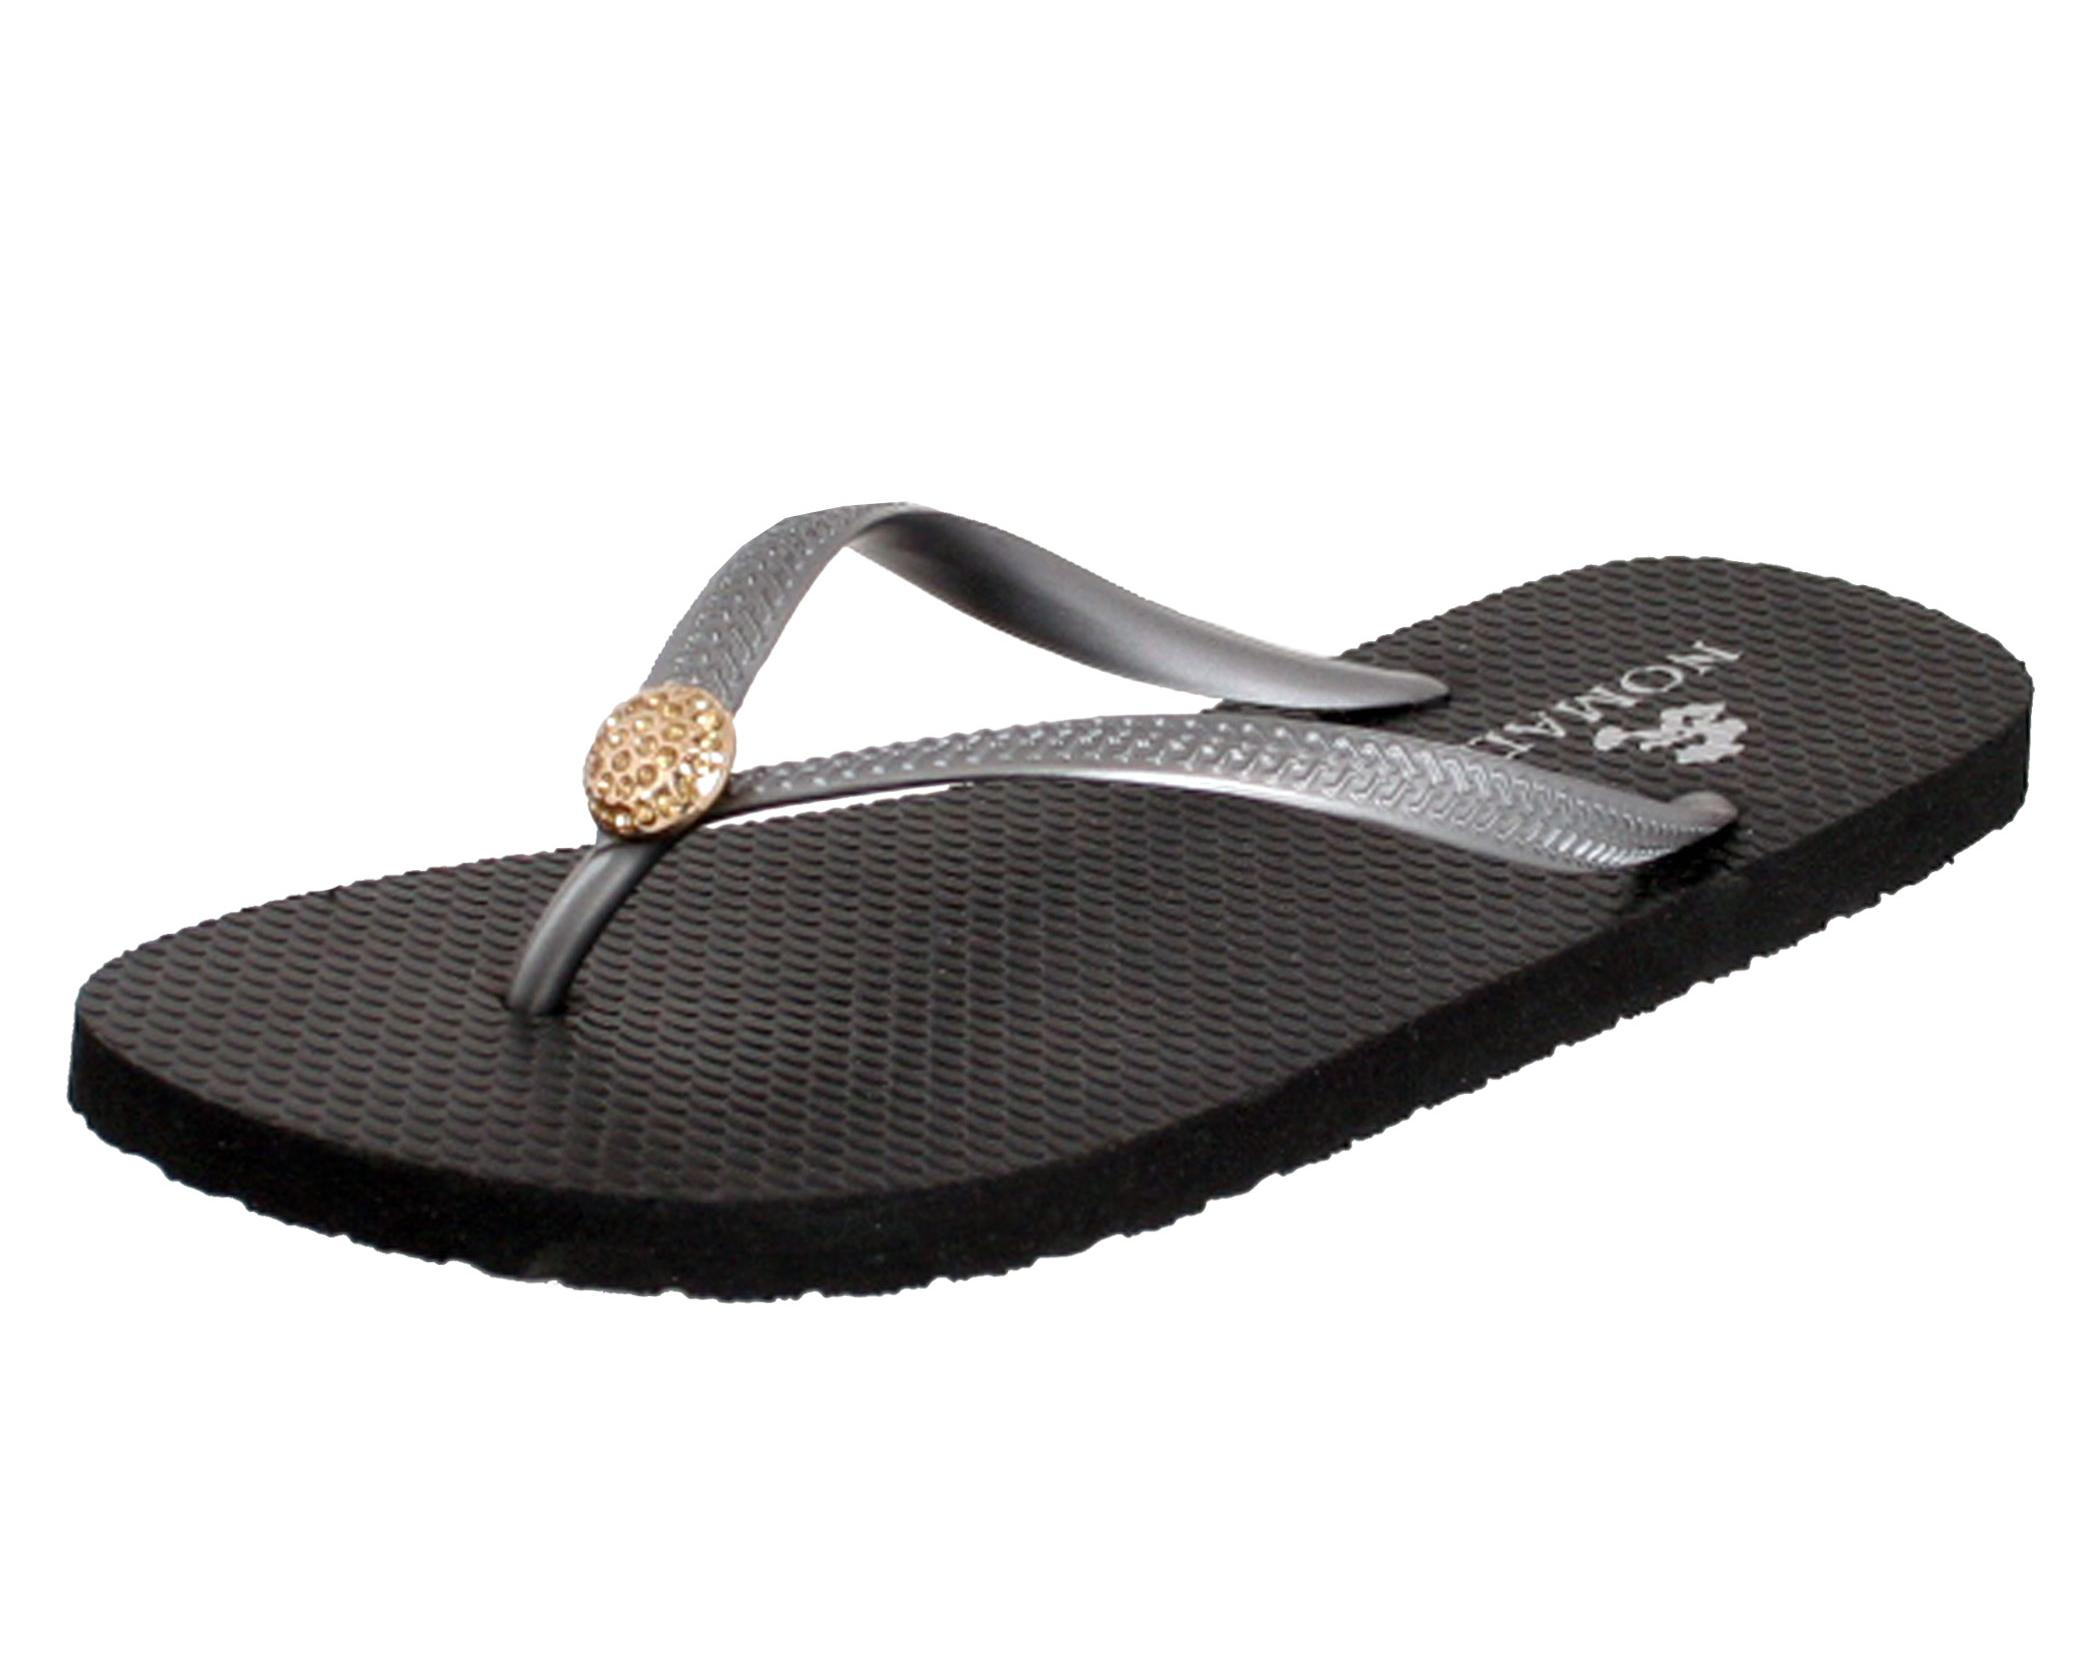 Nomad Pearl Women's Flip Flop by Nomad